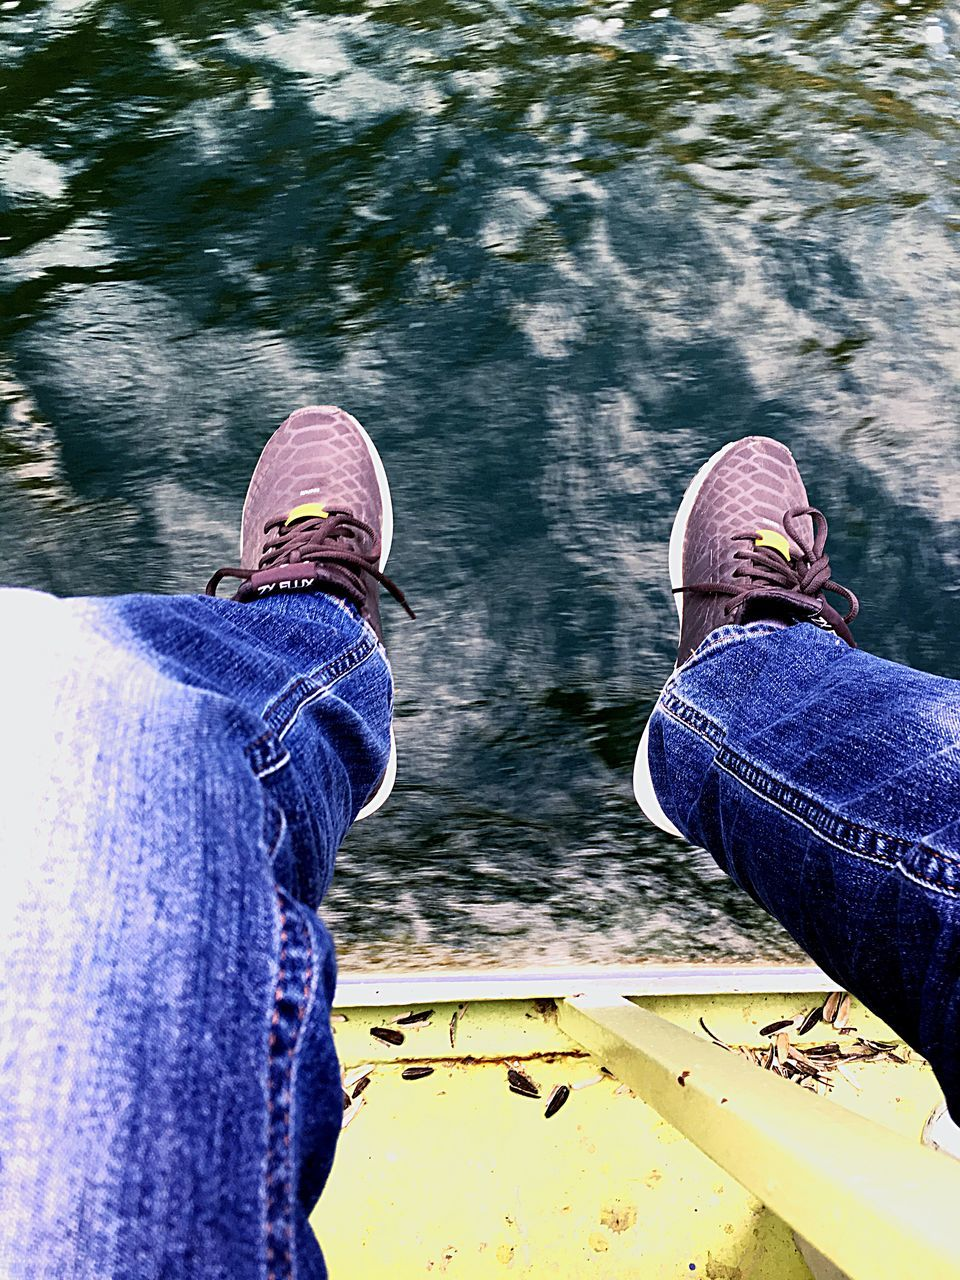 jeans, low section, human leg, shoe, two people, real people, human body part, day, men, high angle view, casual clothing, water, leisure activity, women, outdoors, standing, lifestyles, togetherness, close-up, adult, people, only men, adults only